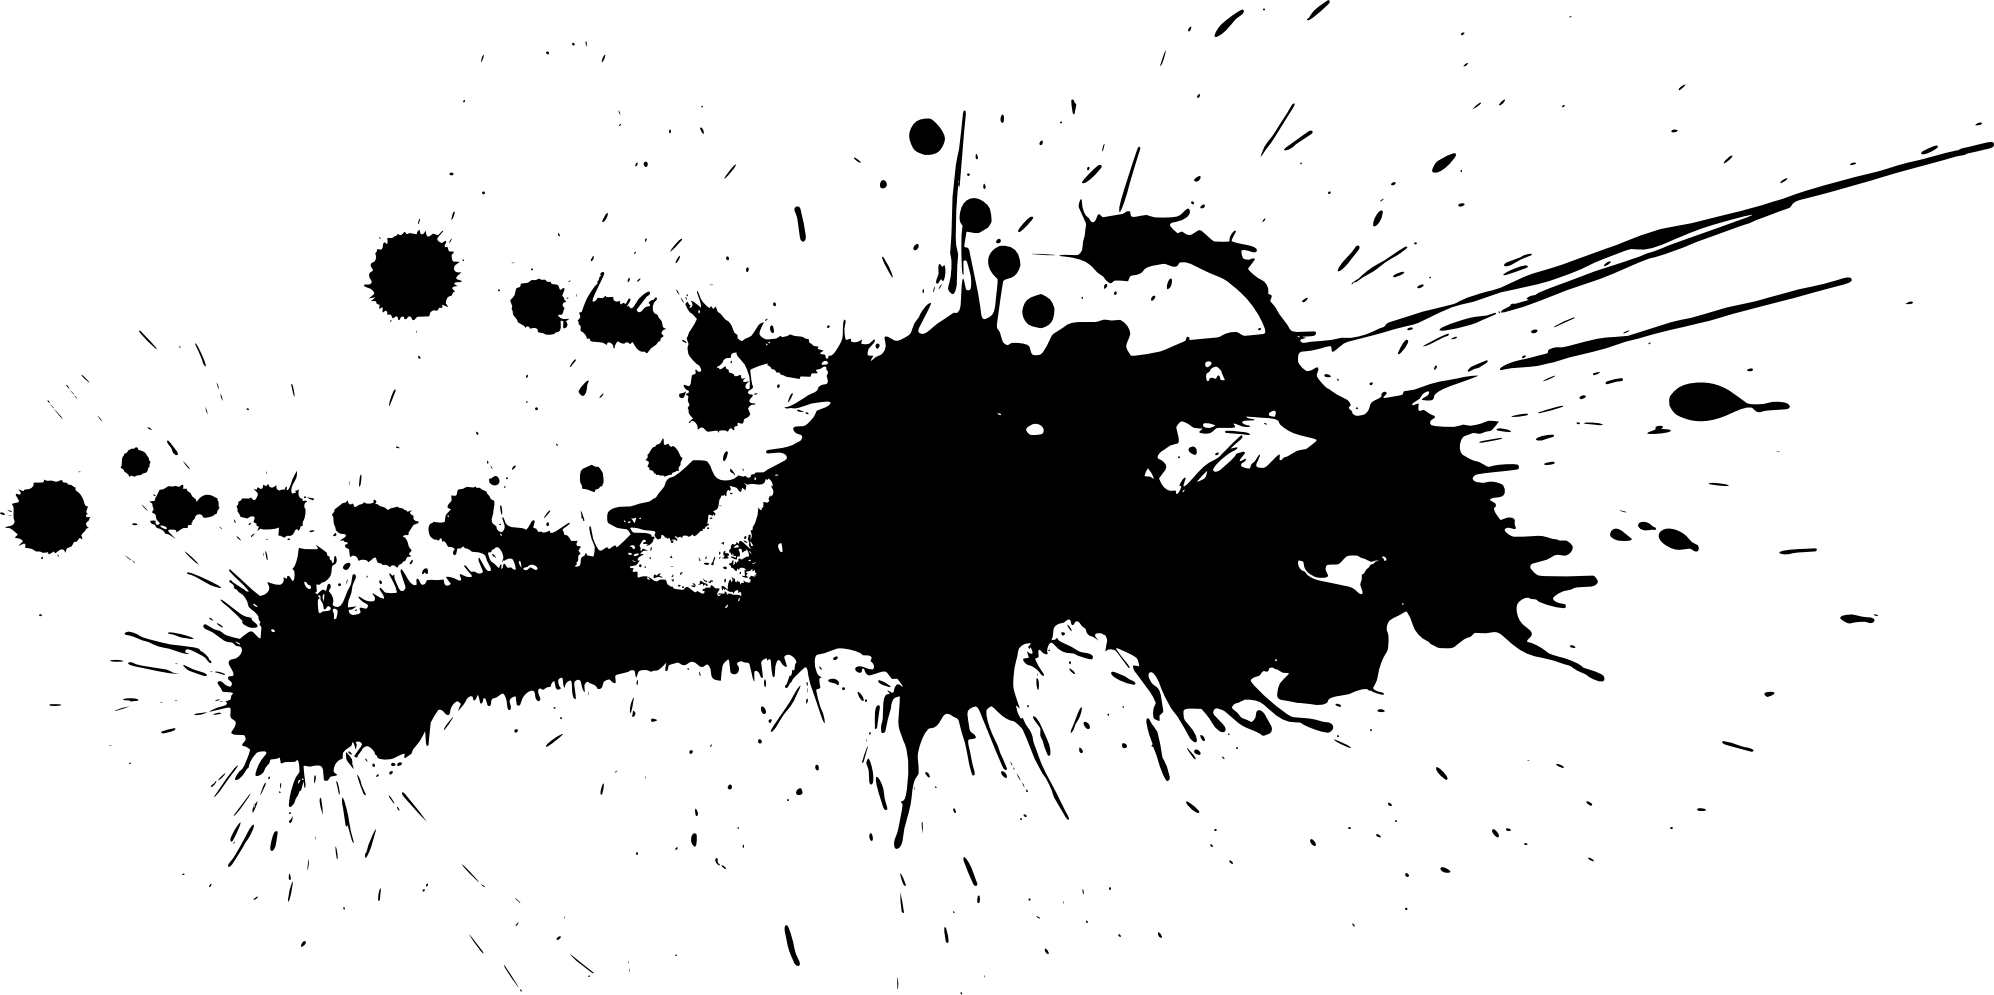 ink splat png